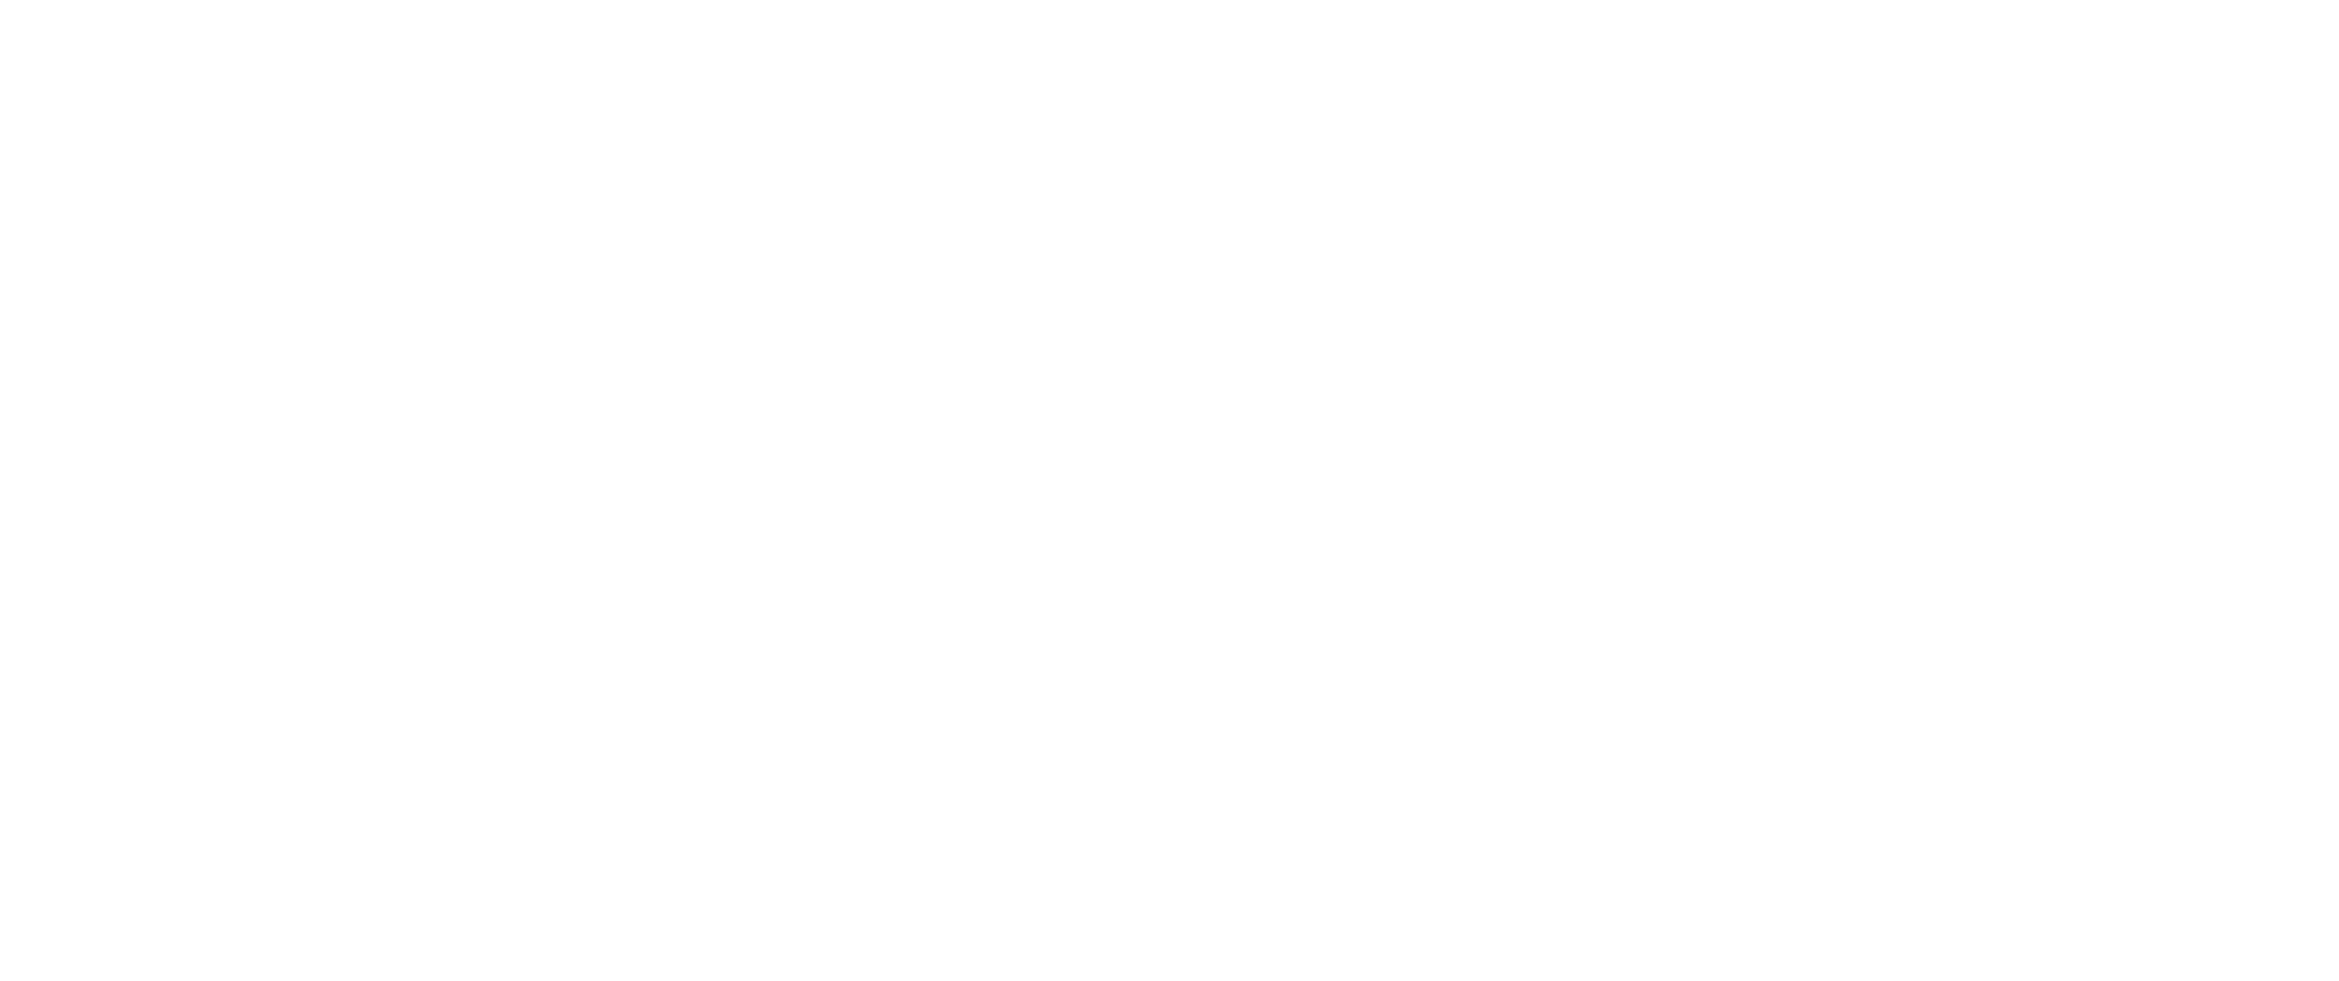 White horizontal Zcash logo